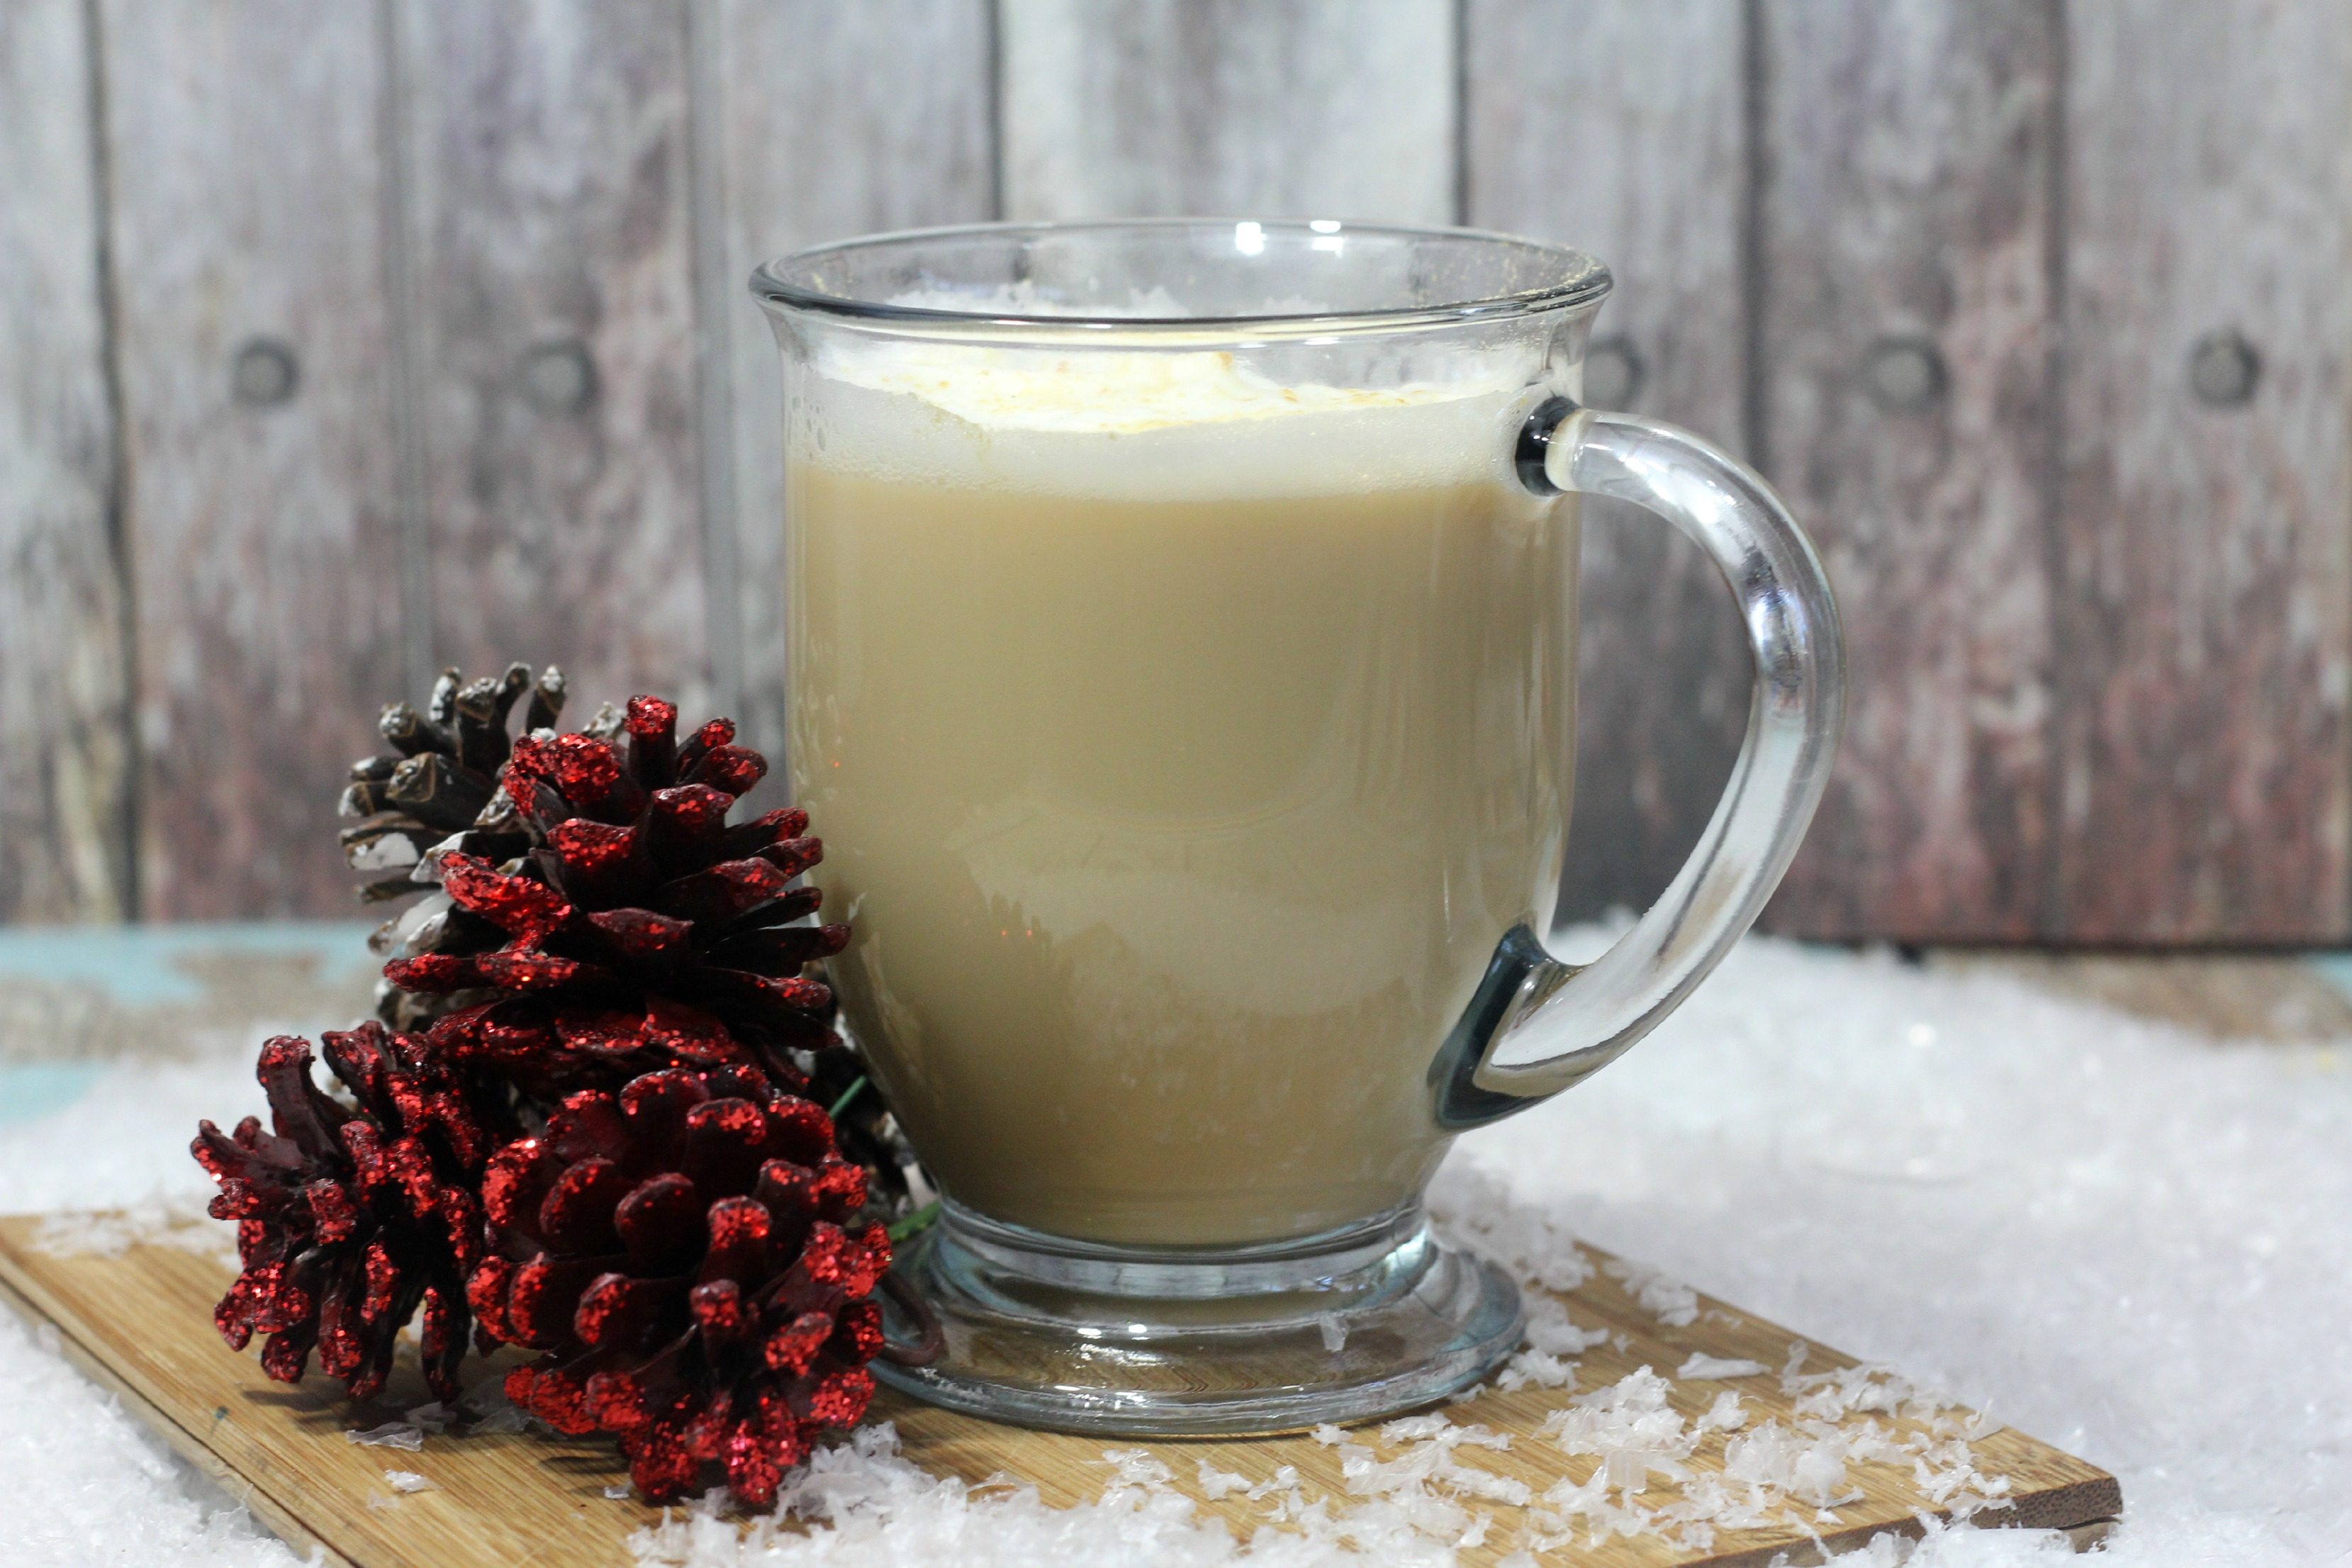 Whether you are looking for a special drink for Christmas, or want a chai latte recipe, you will love this Gingerbread Chai latte